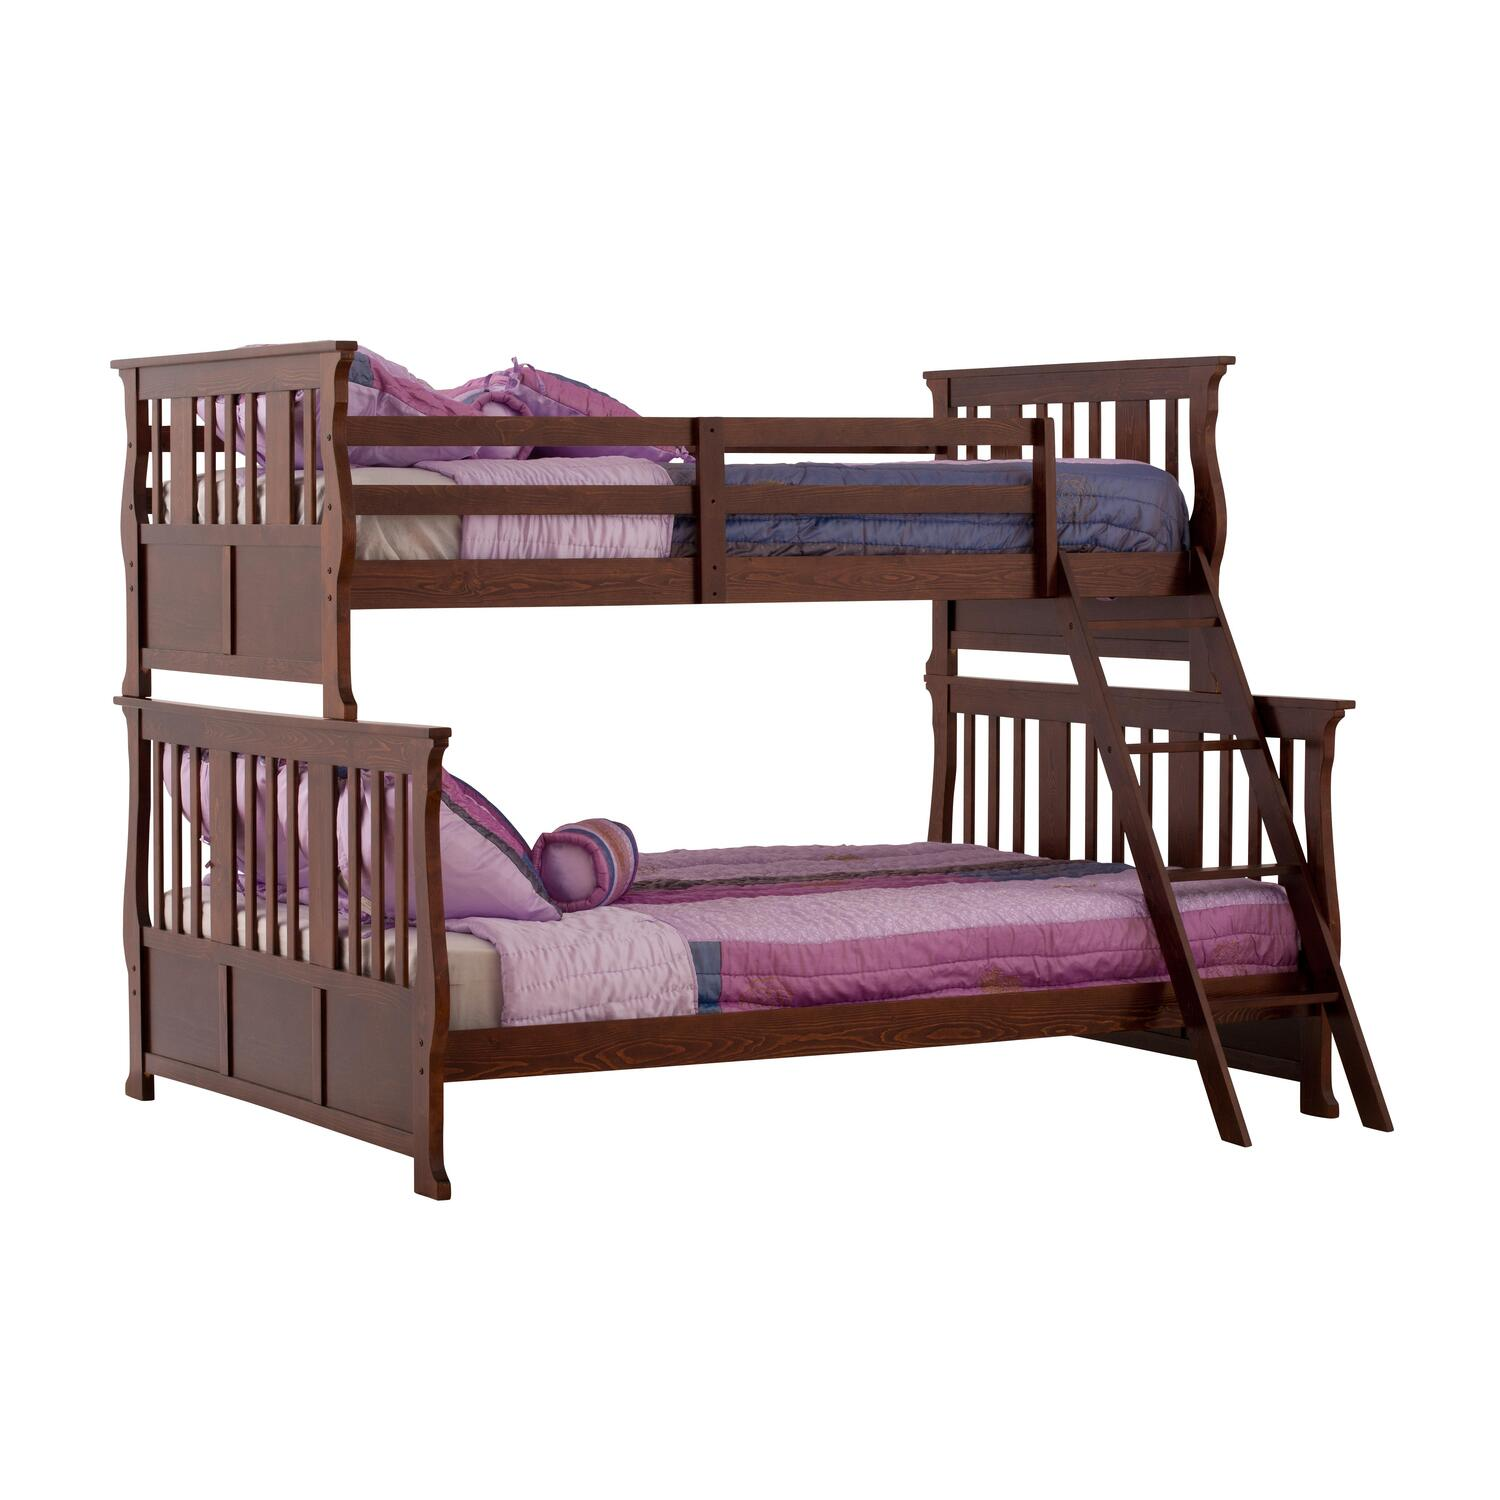 Storkcraft 09740 431 Carrara Twin Double Bunk Bed